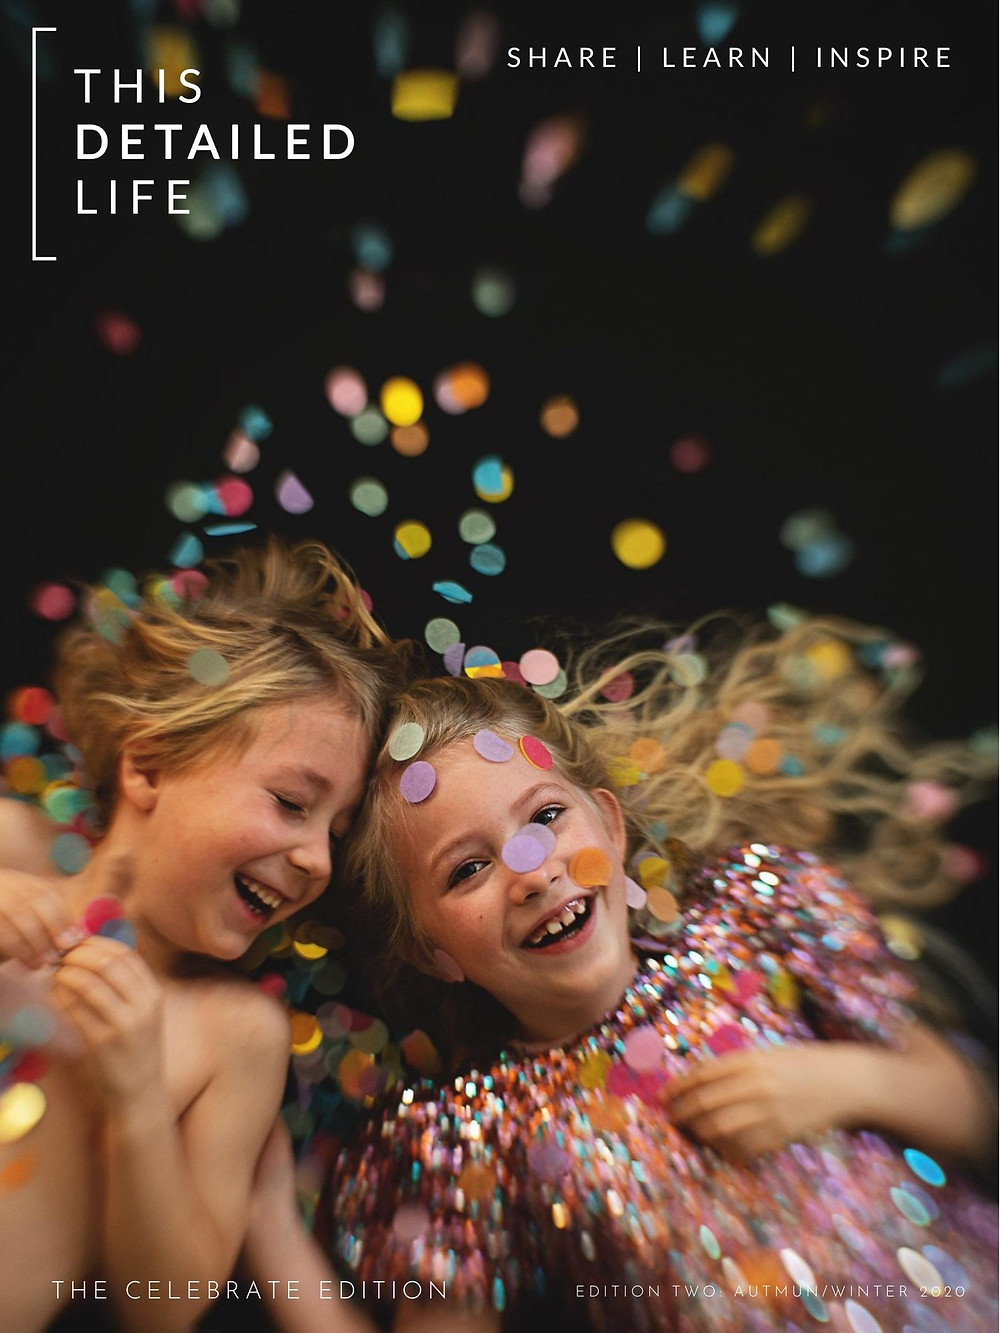 Sparkly Children laying in colourful confetti